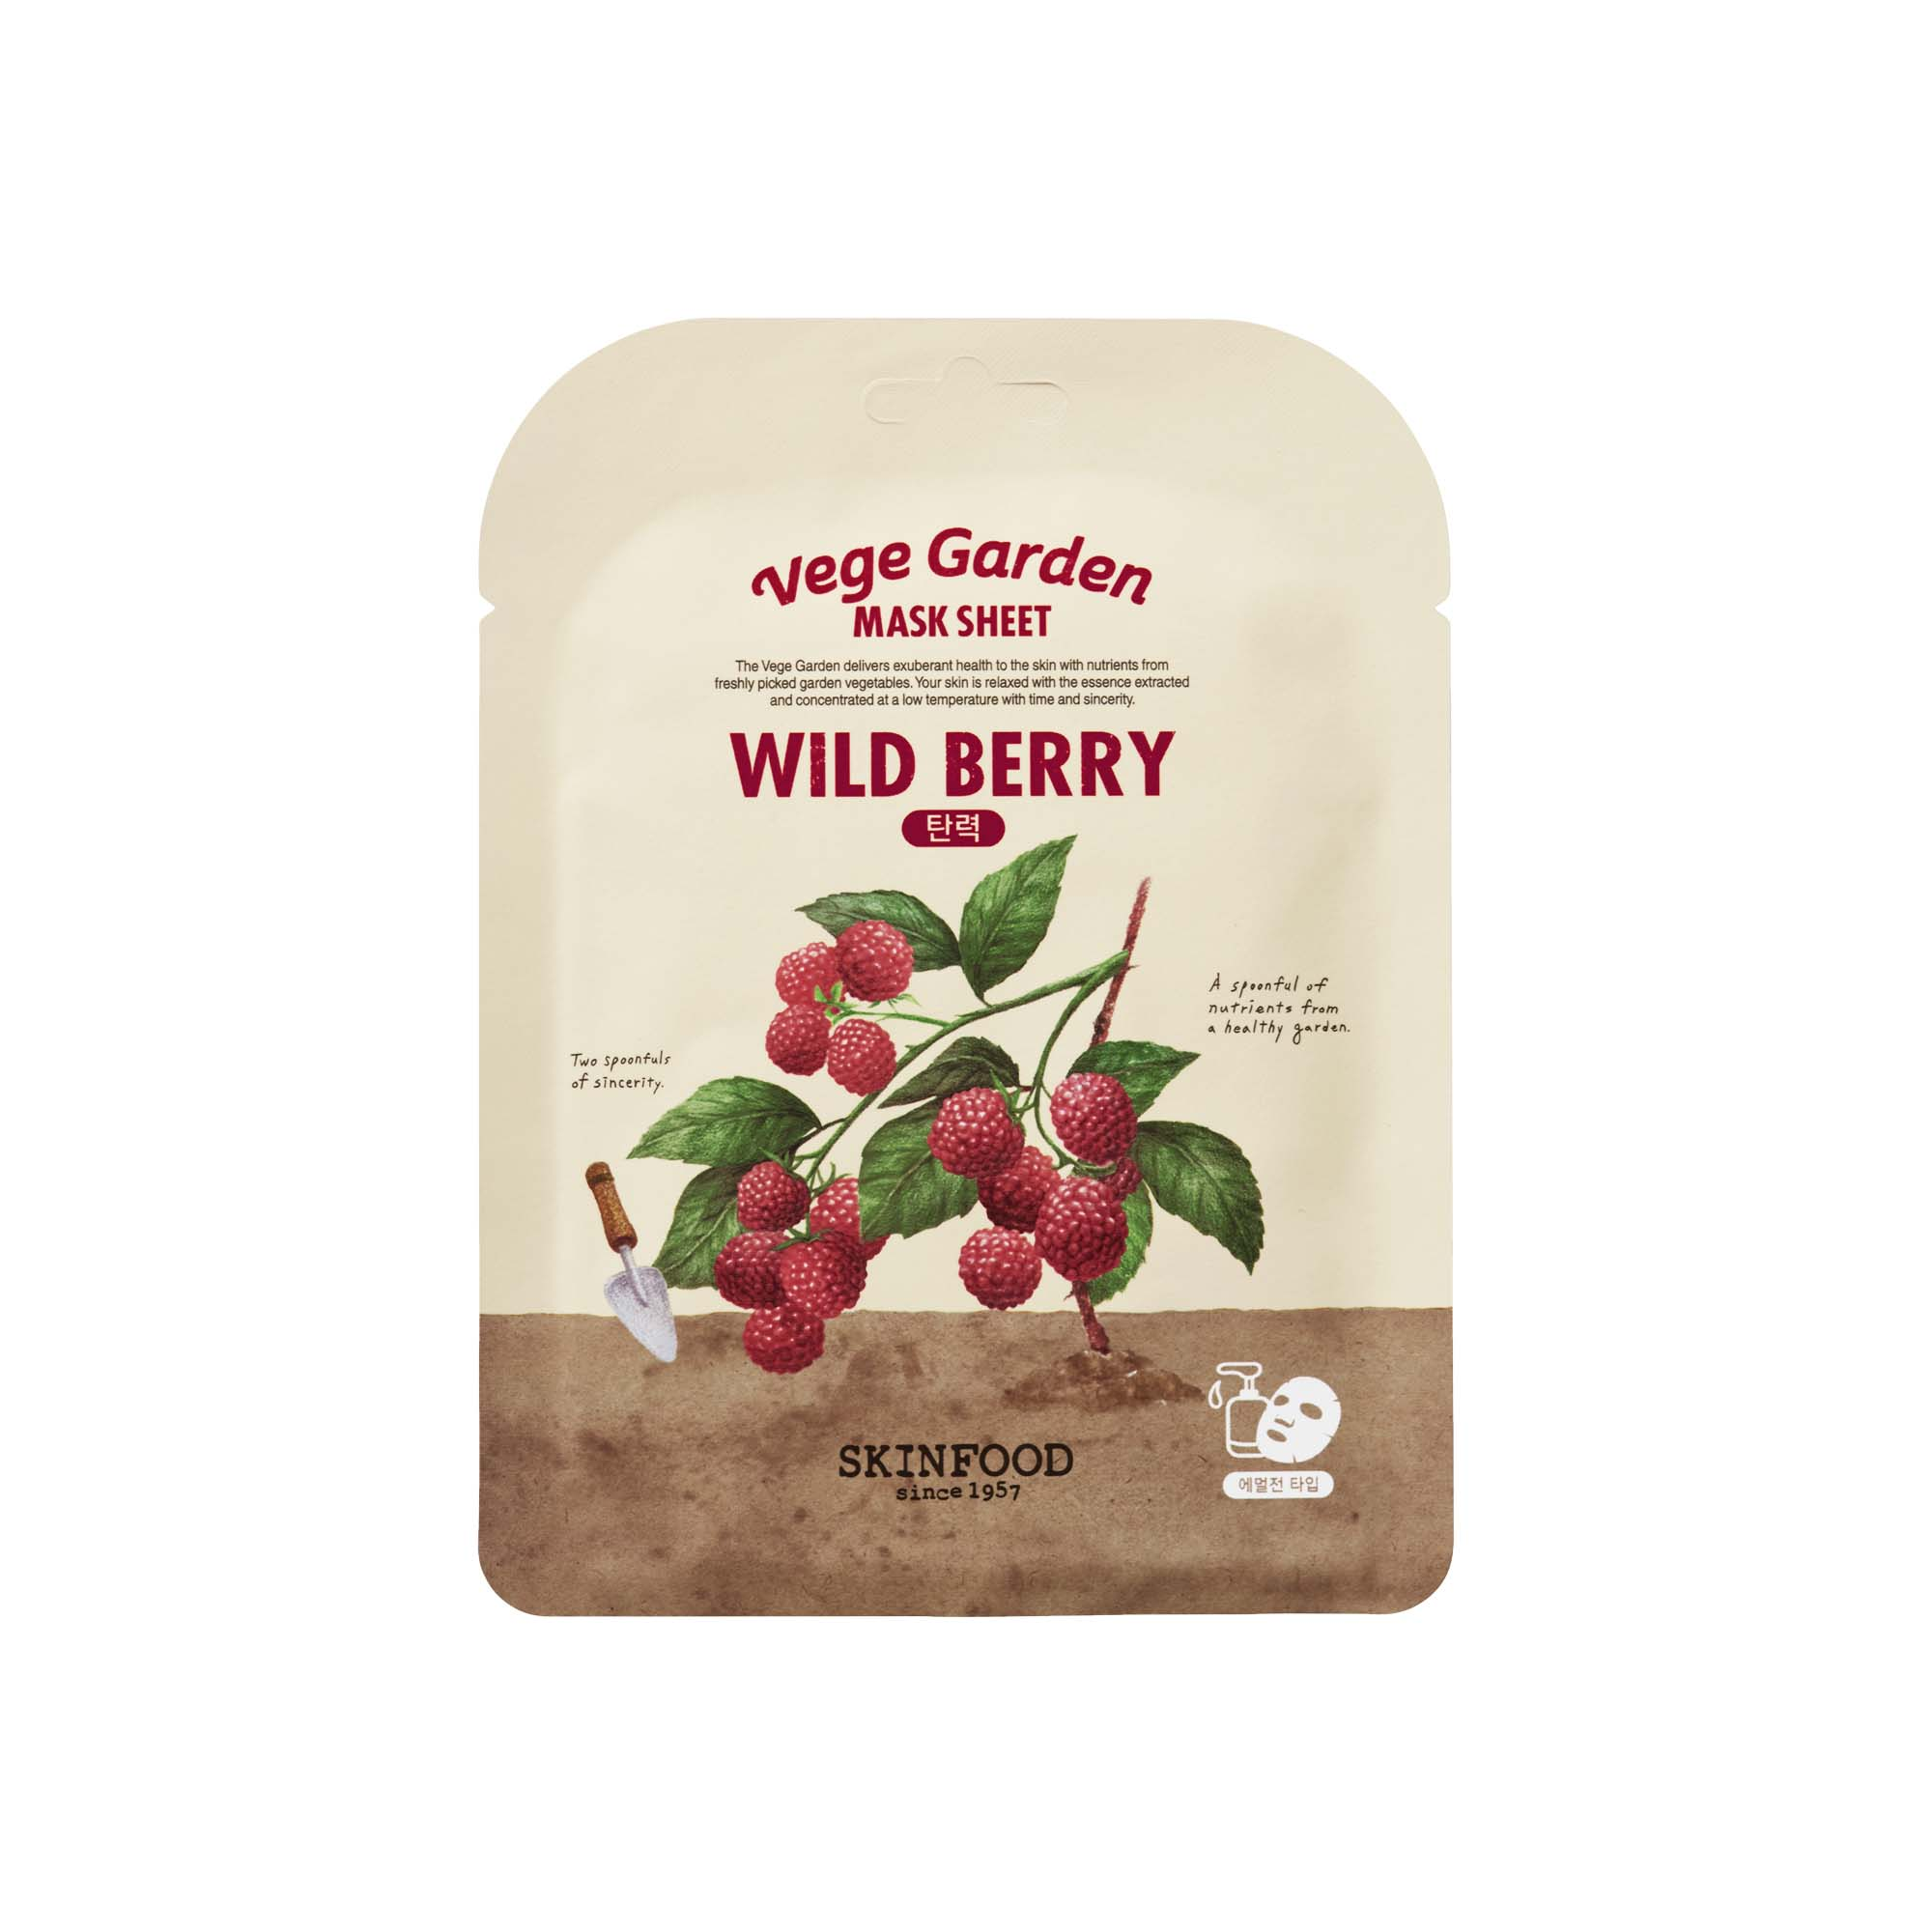 VEGE GARDEN WILD BERRY MASK SHEET